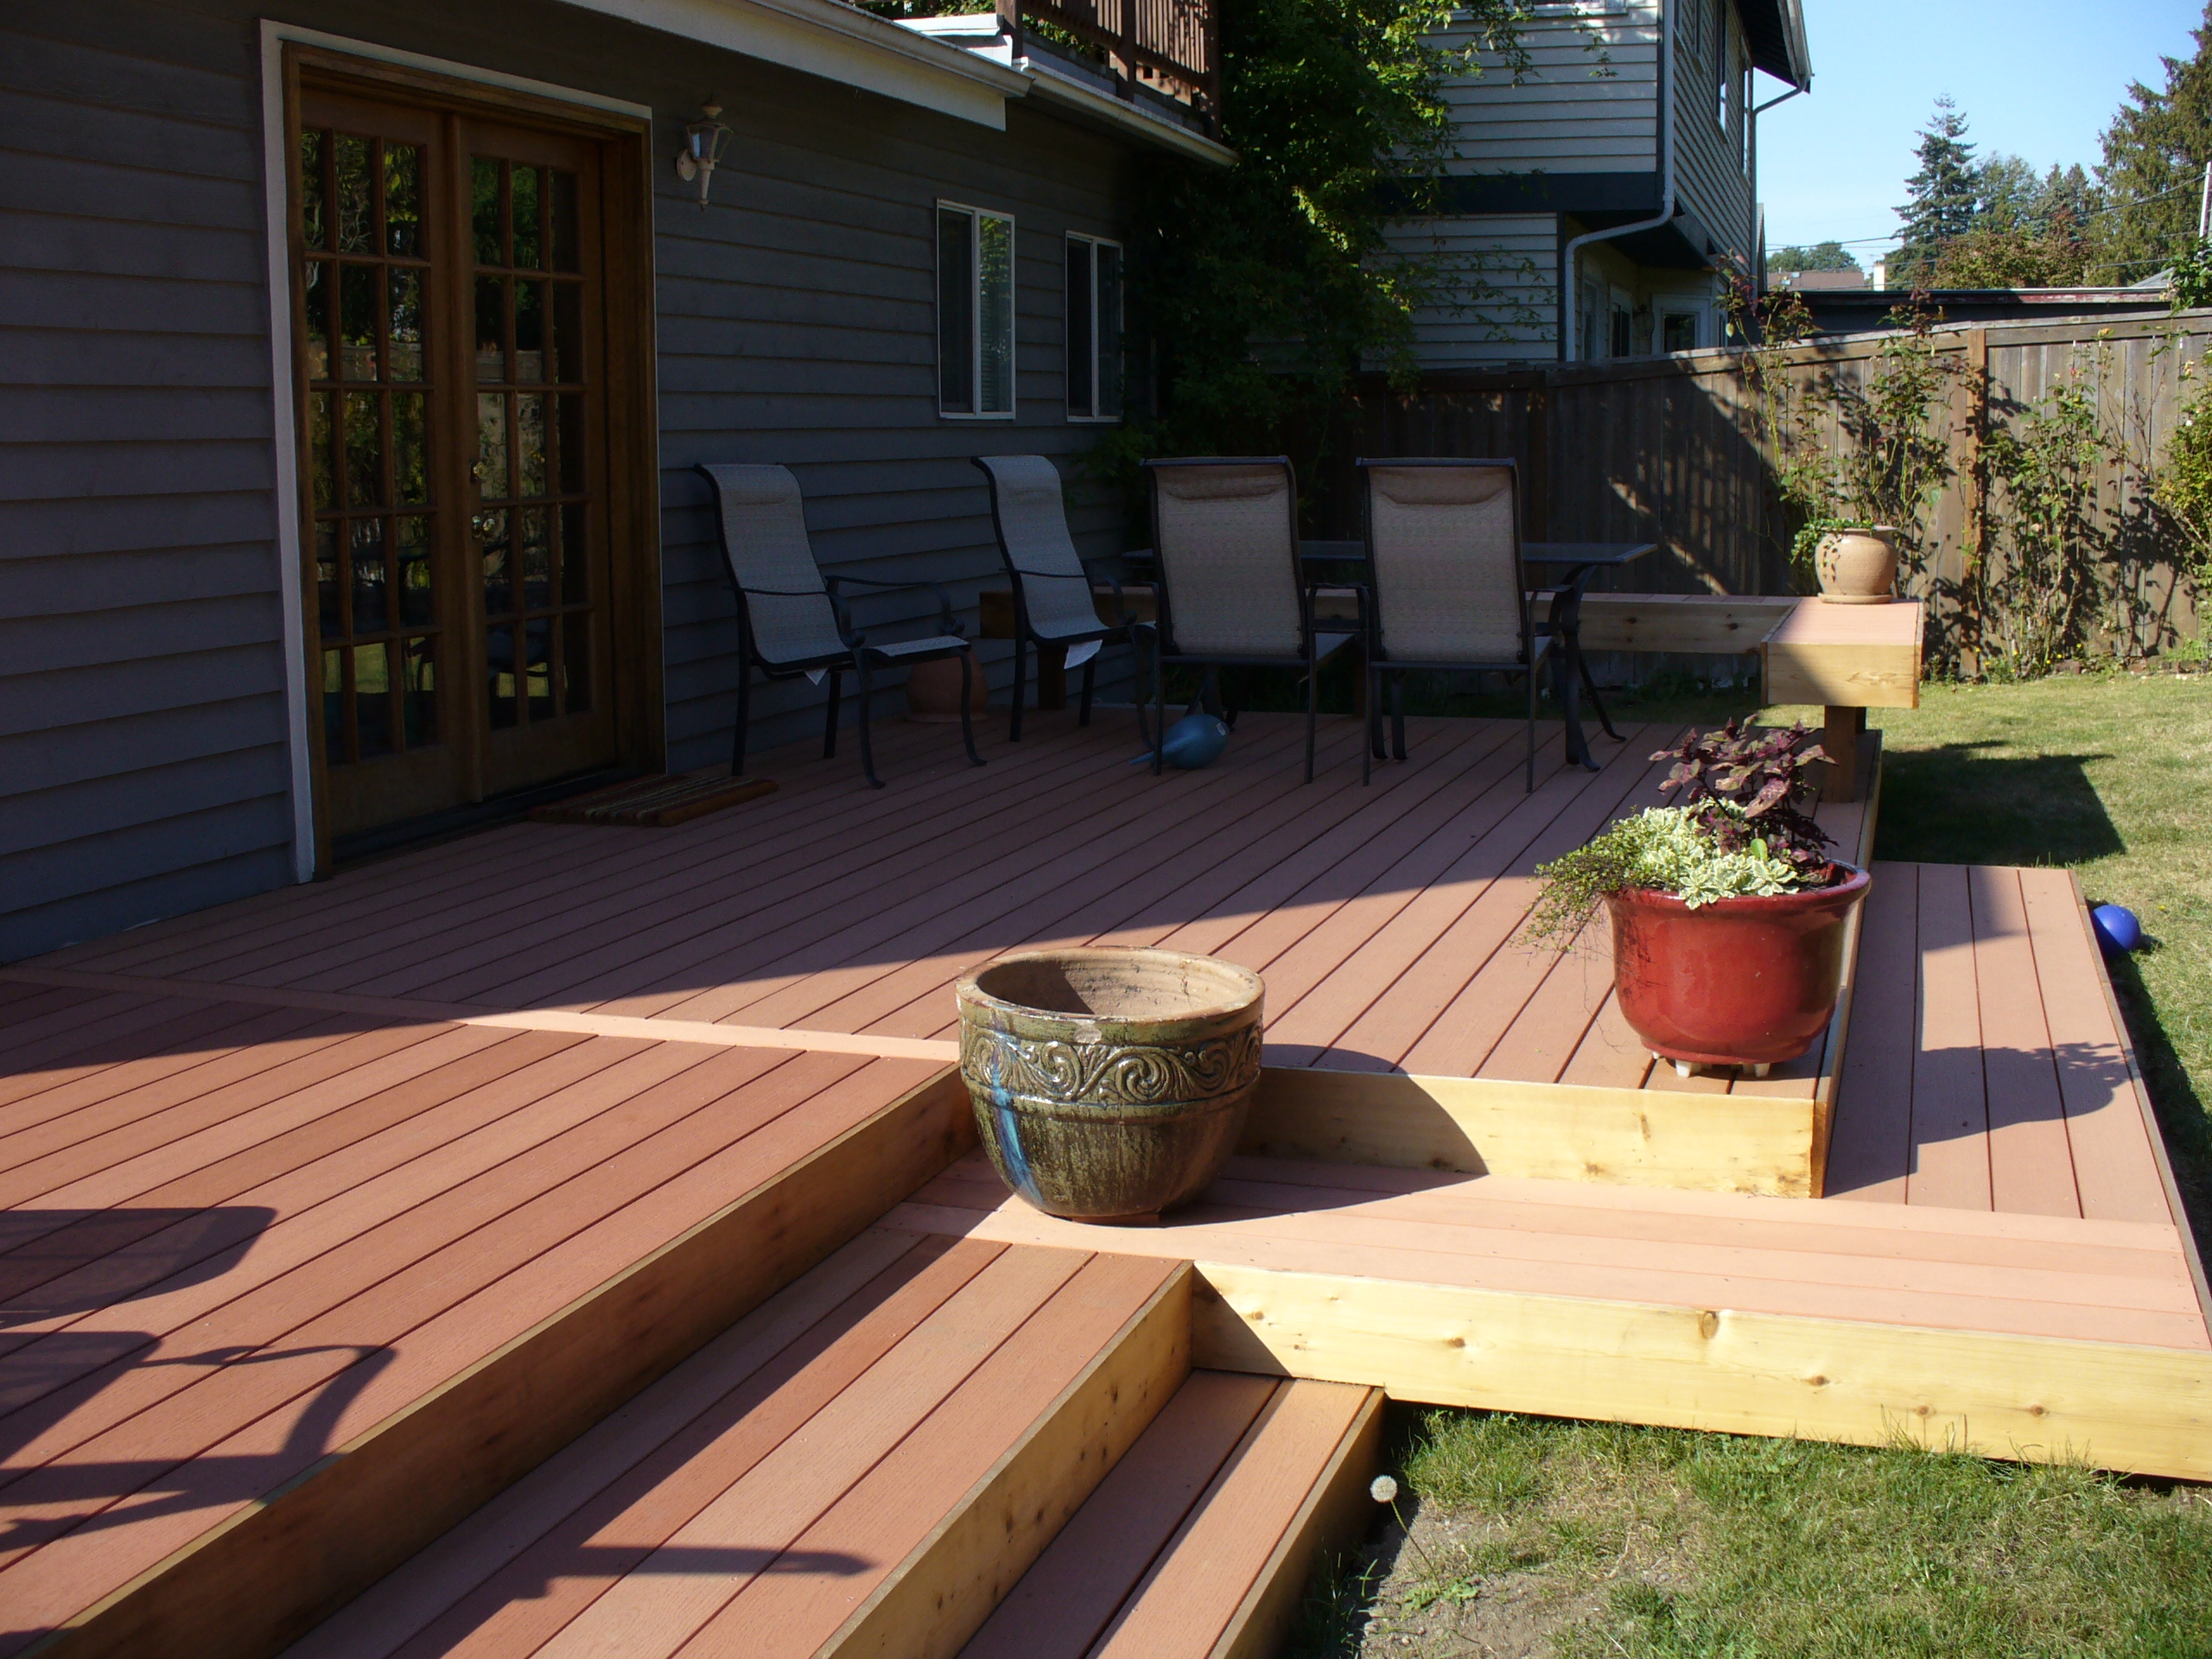 Veranda Composite Decking | Home Depot Composite Decking | Railing Systems Home Depot